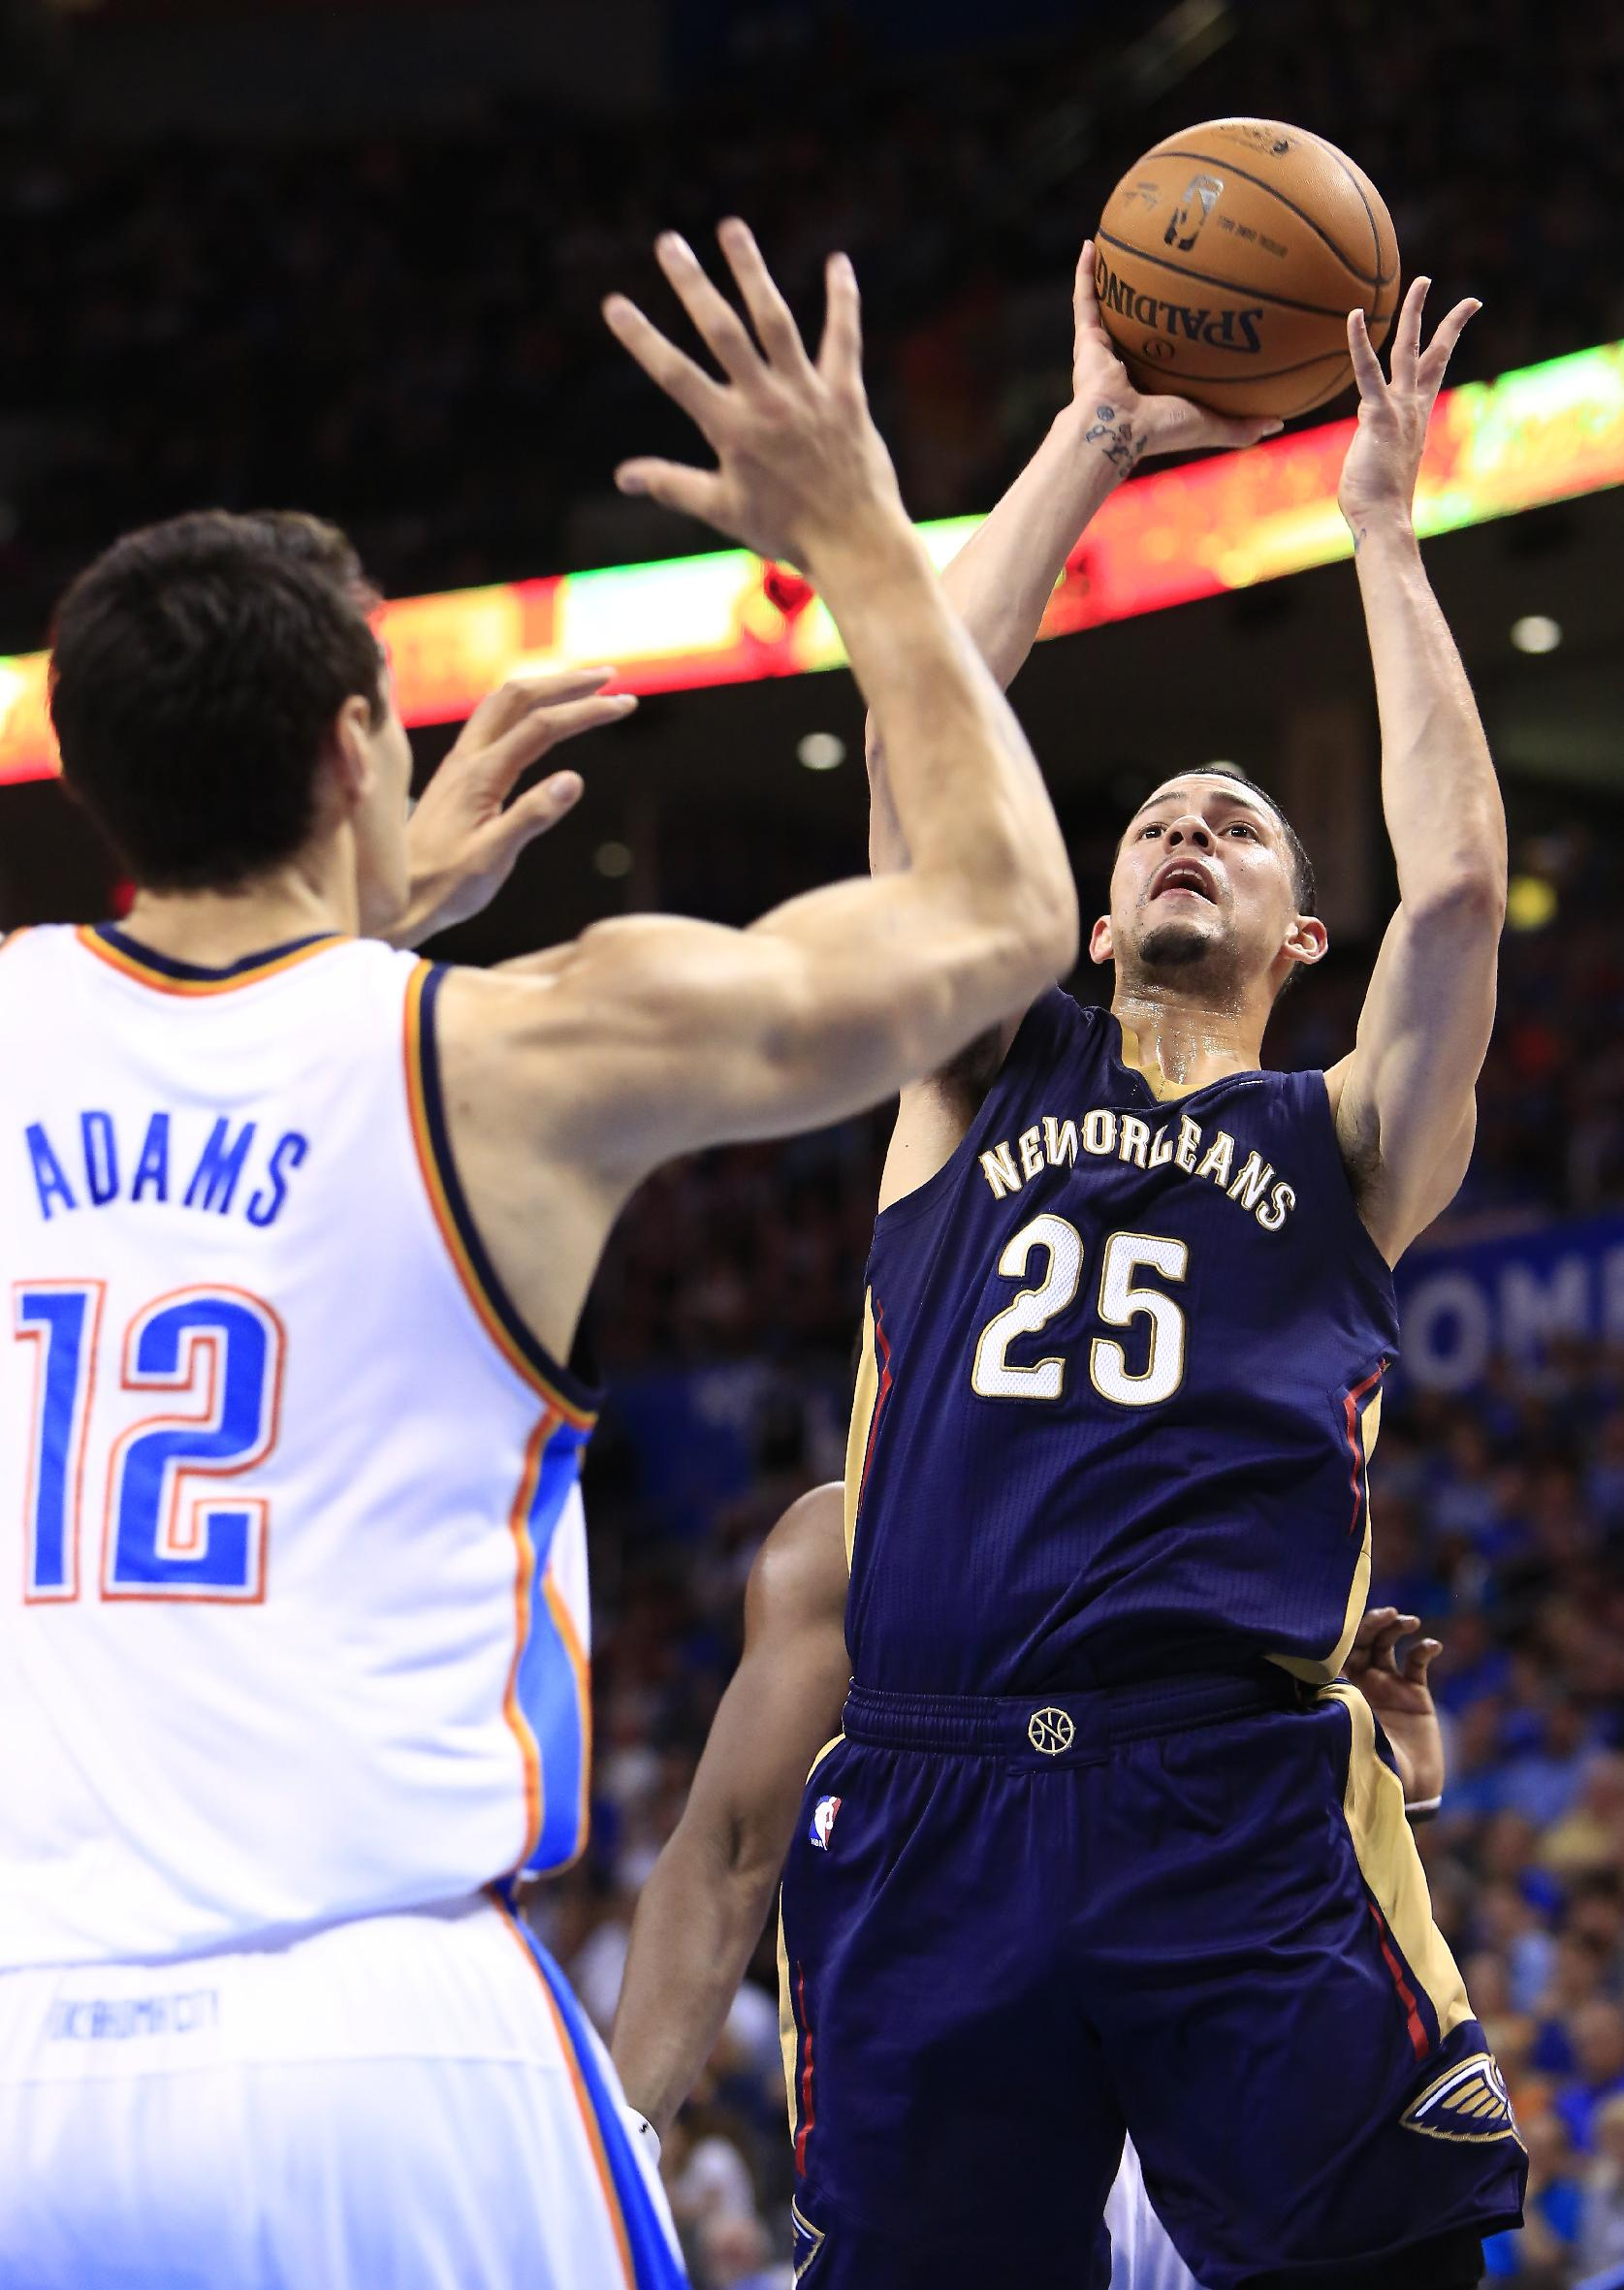 New Orleans Pelicans guard Austin Rivers (25) shoots as Oklahoma City Thunder center Steven Adams (12) defends during the fourth quarter of a NBA basketball game in Oklahoma City, Friday, April 11, 2014. Oklahoma City won 116-94